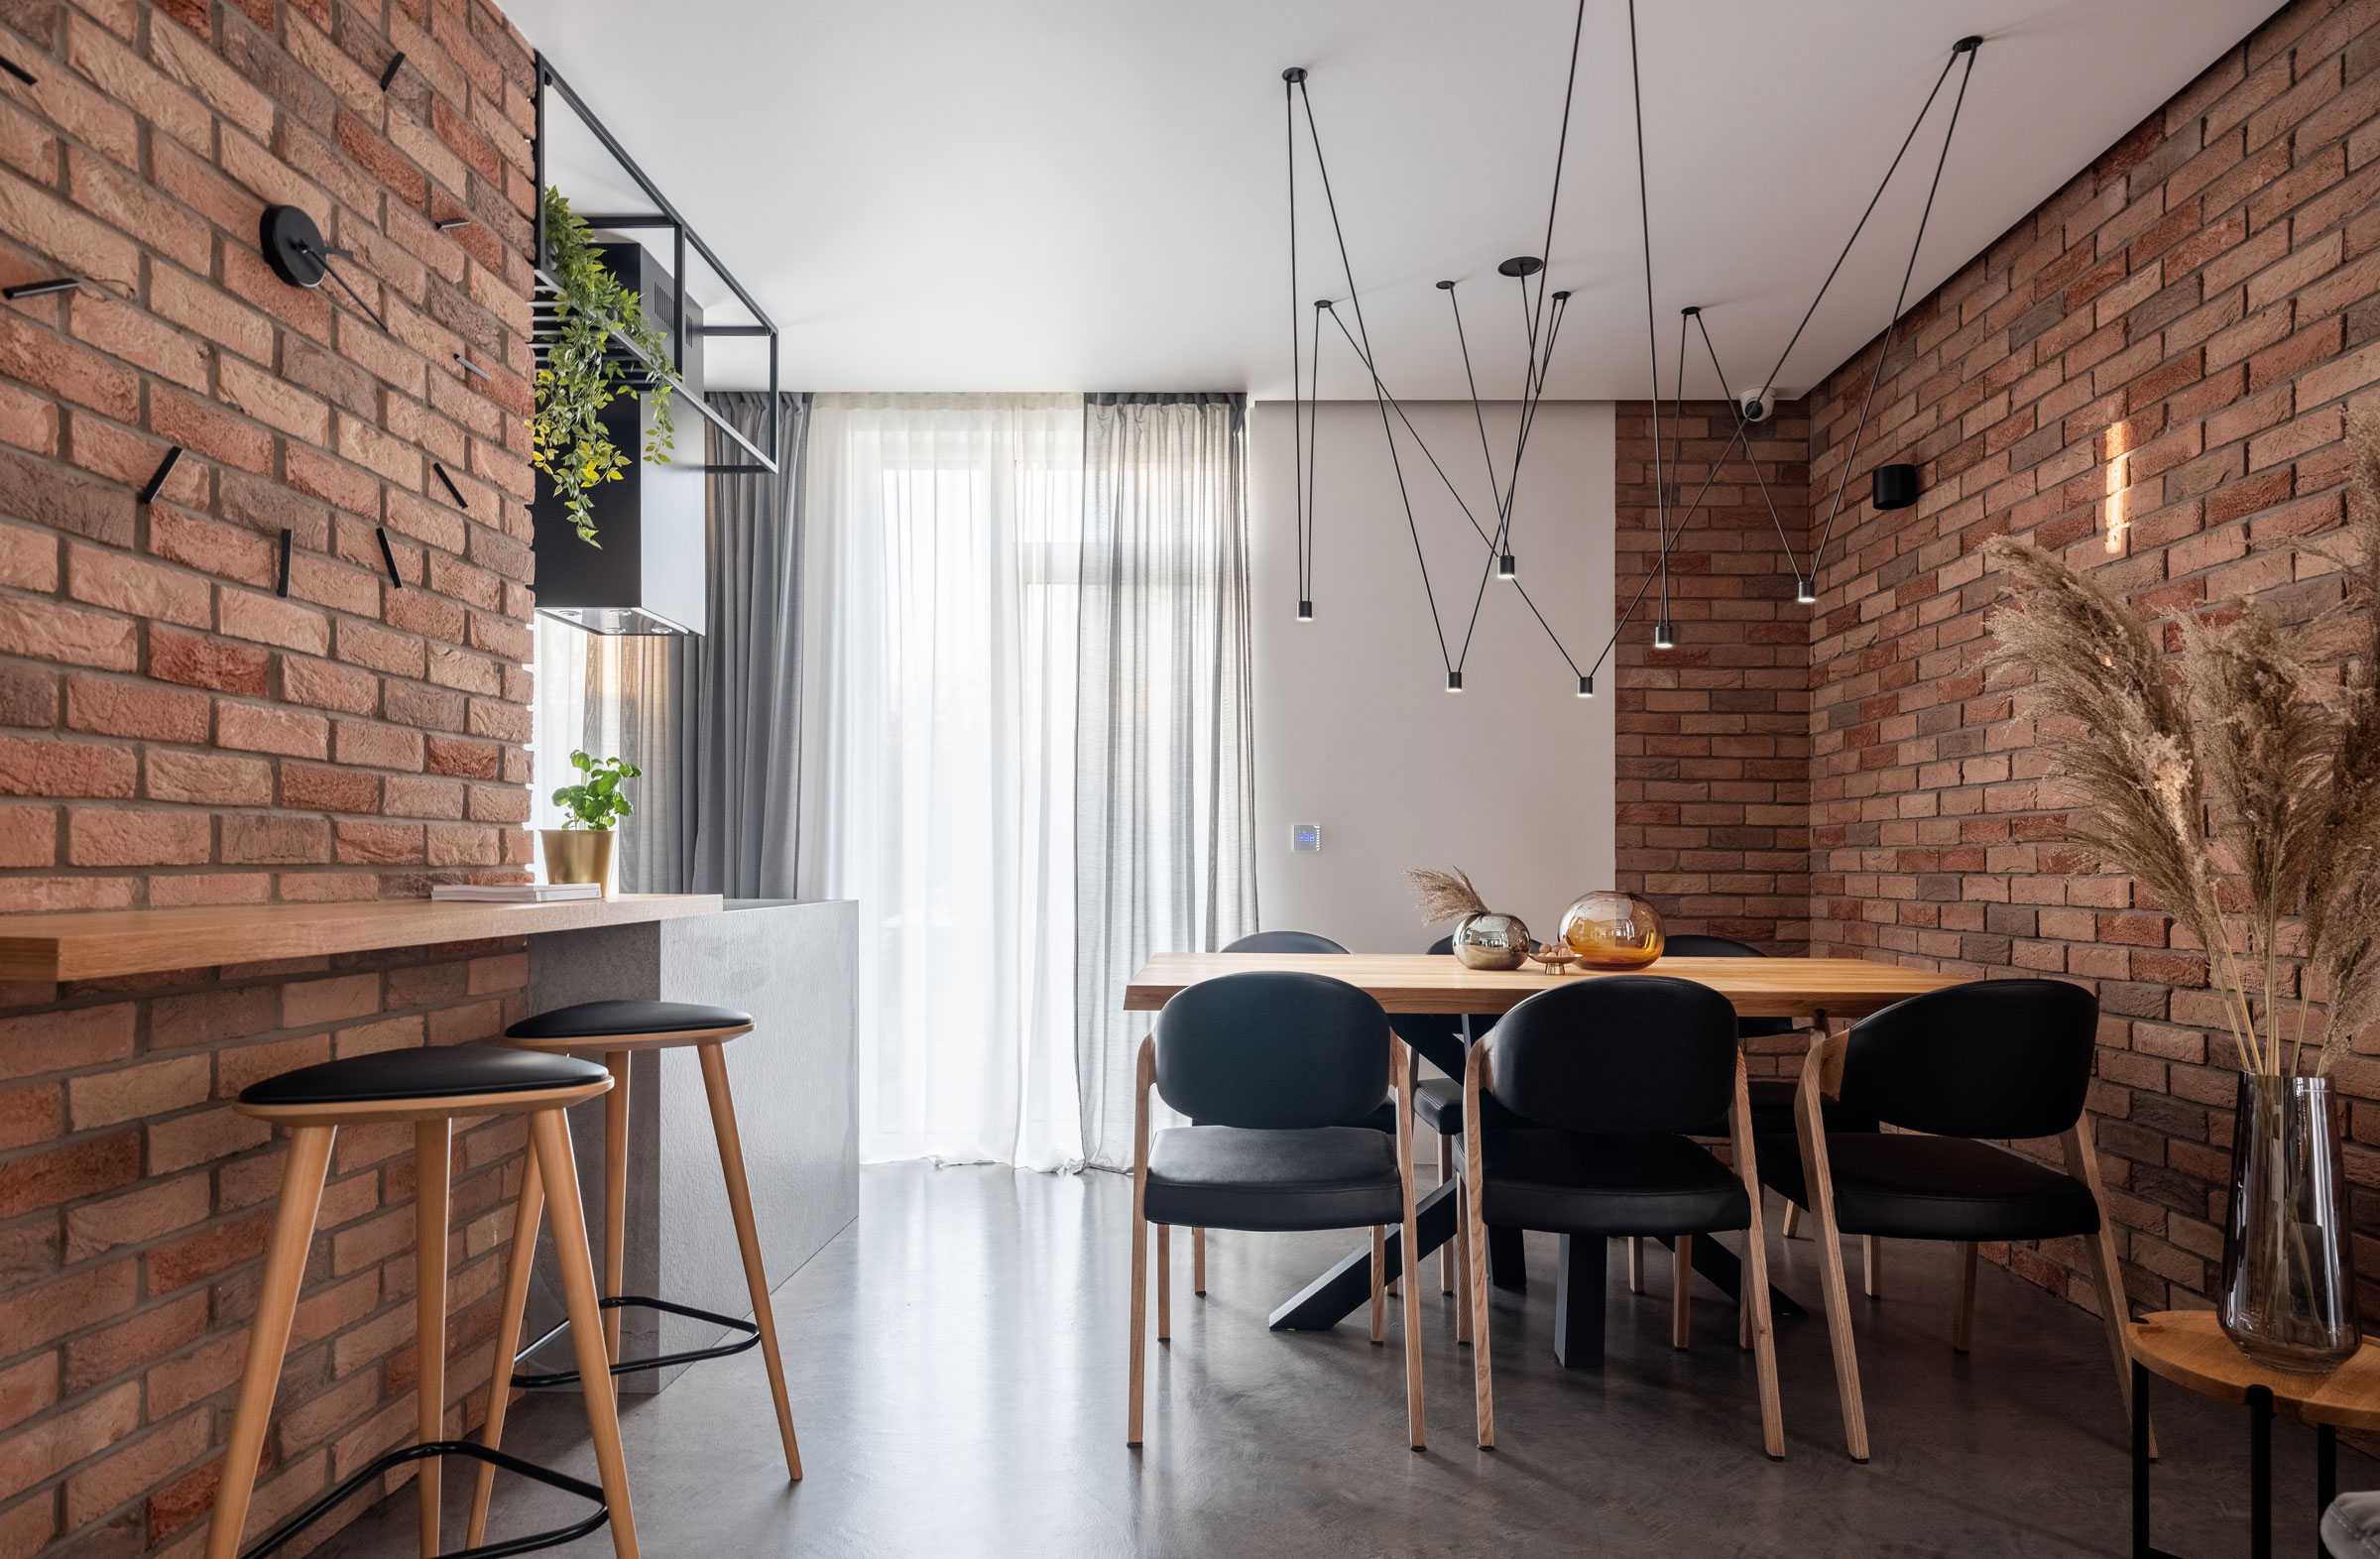 Vibia The Edit - Dining and Design - Match